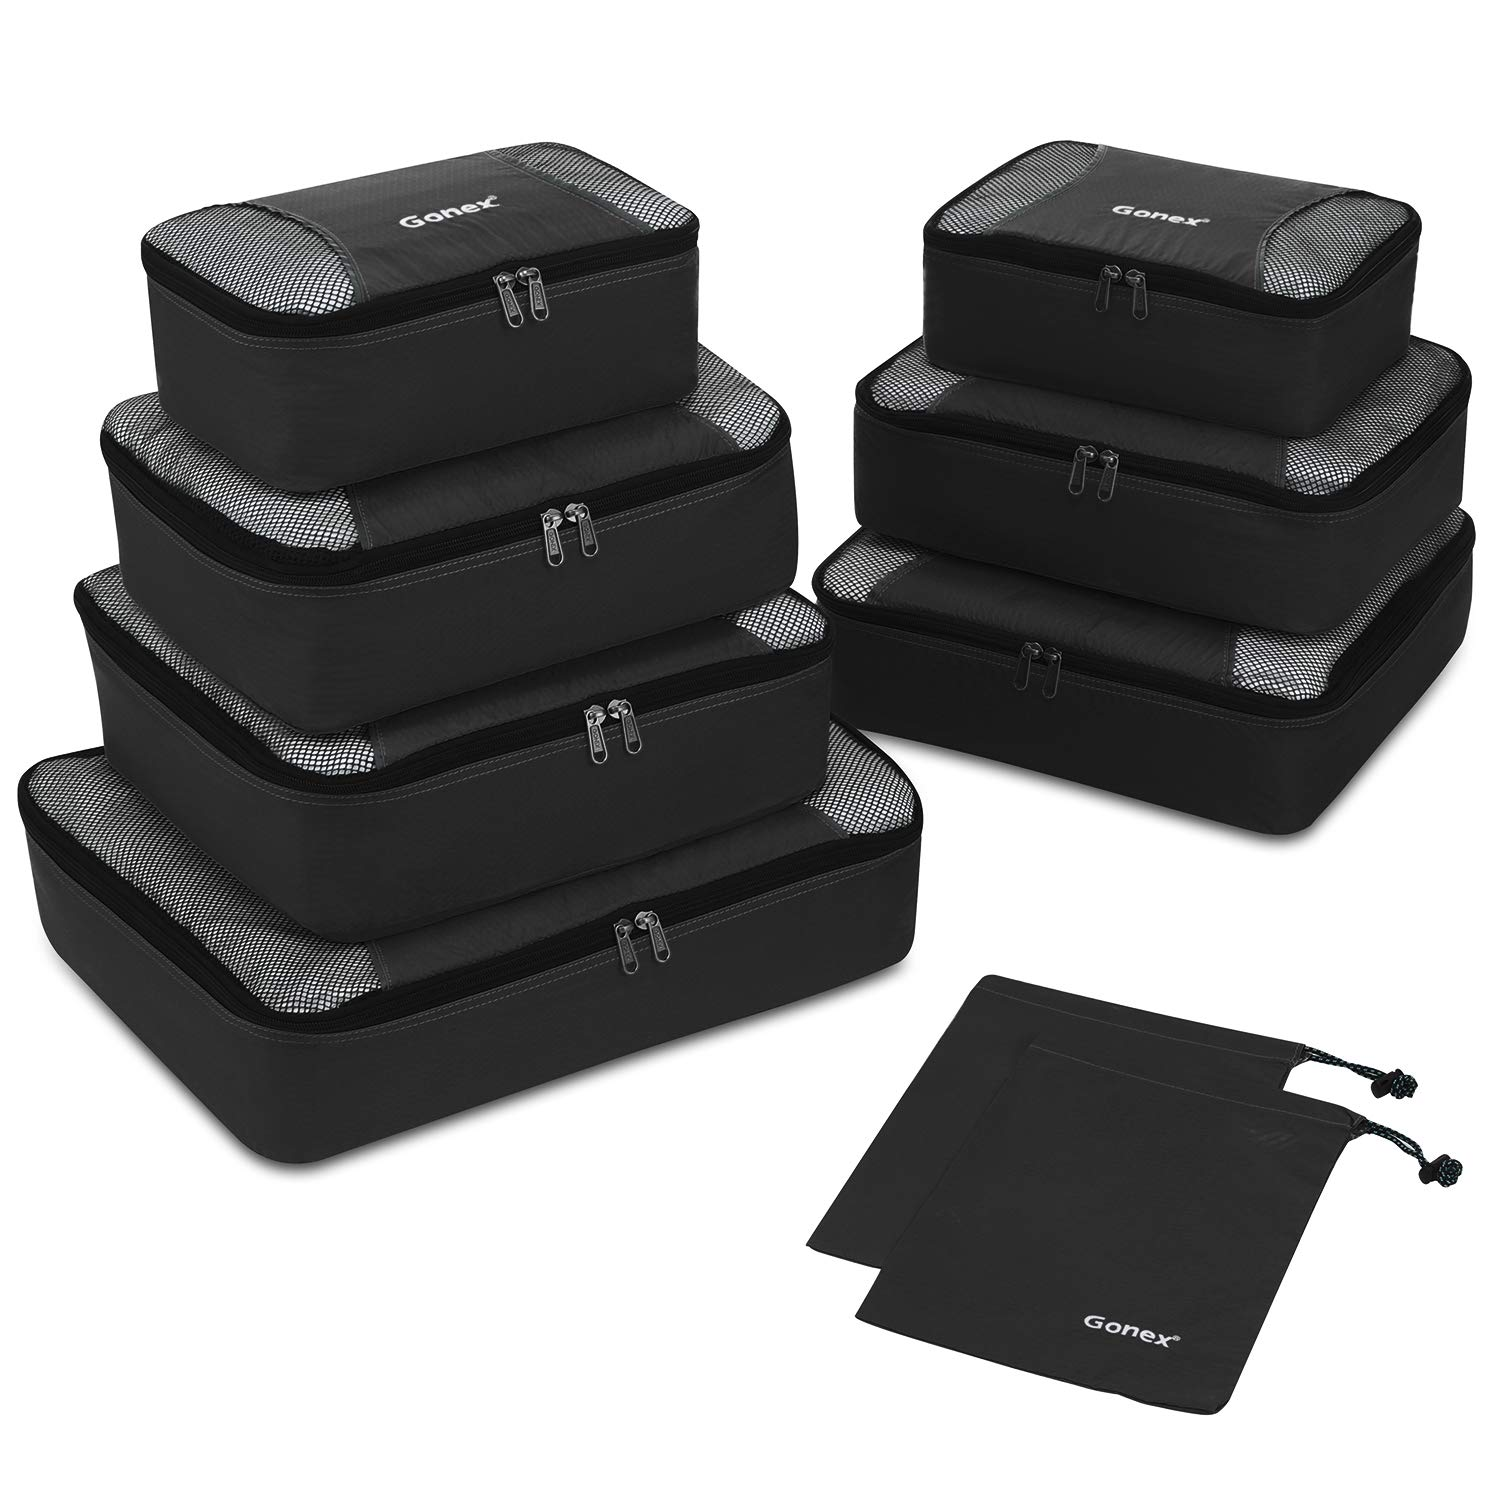 Gonex Rip-Stop Nylon Travel Organizers Packing Bags Black by Gonex